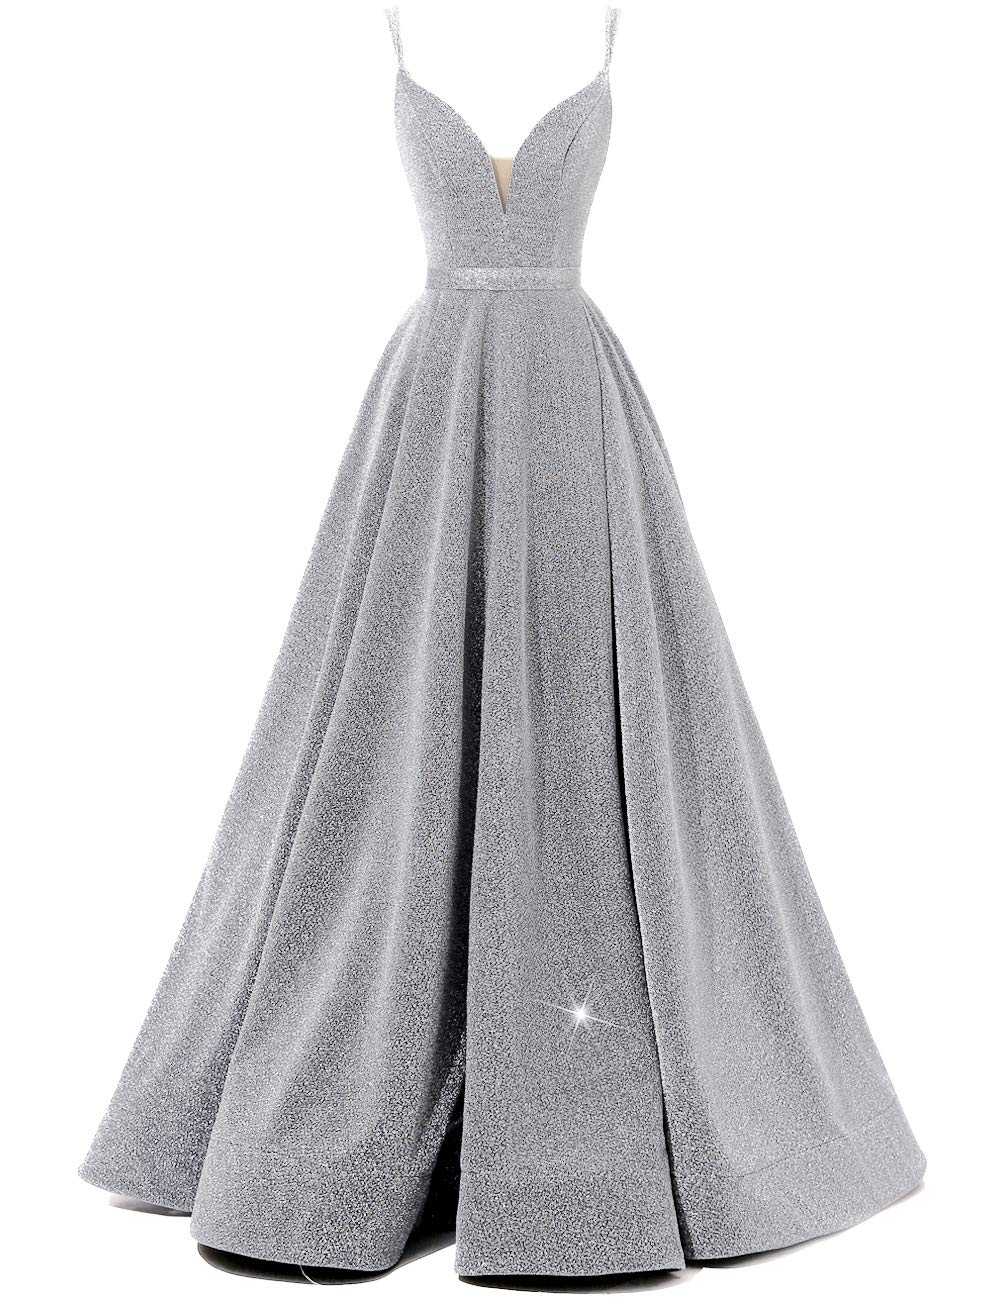 Sparkly Masquerade Ball Gown Spaghetti V-Neck Prom Dresses Long Side Split Formal Evening Gowns Silver